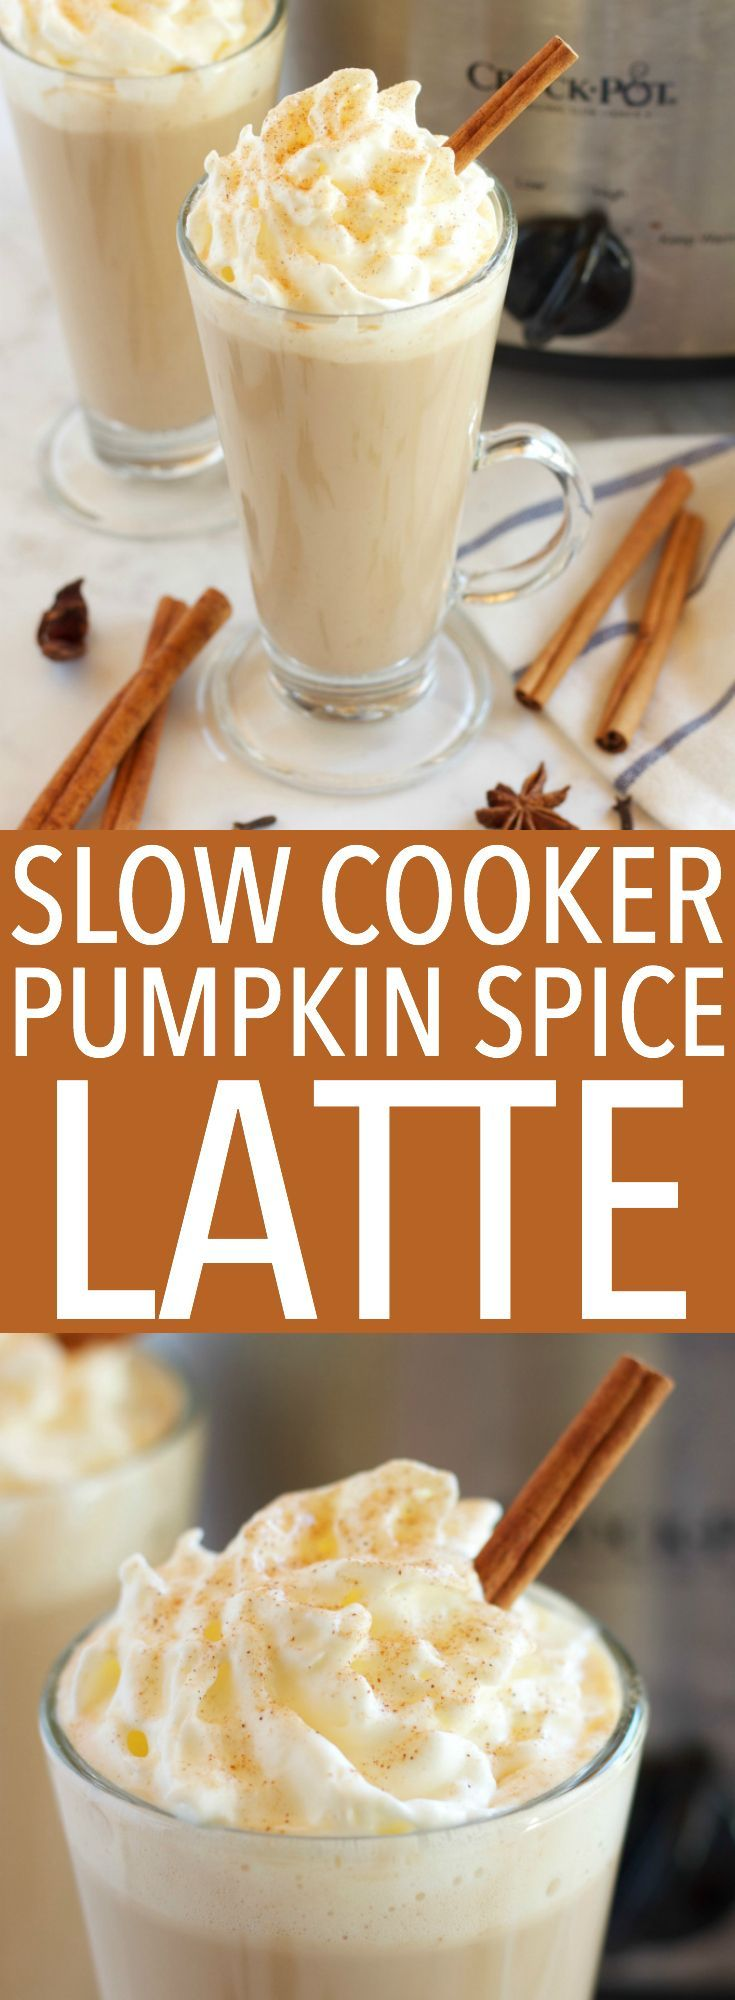 Great if you don't want to go to Starbucks or Mcdonald's to get a PSL